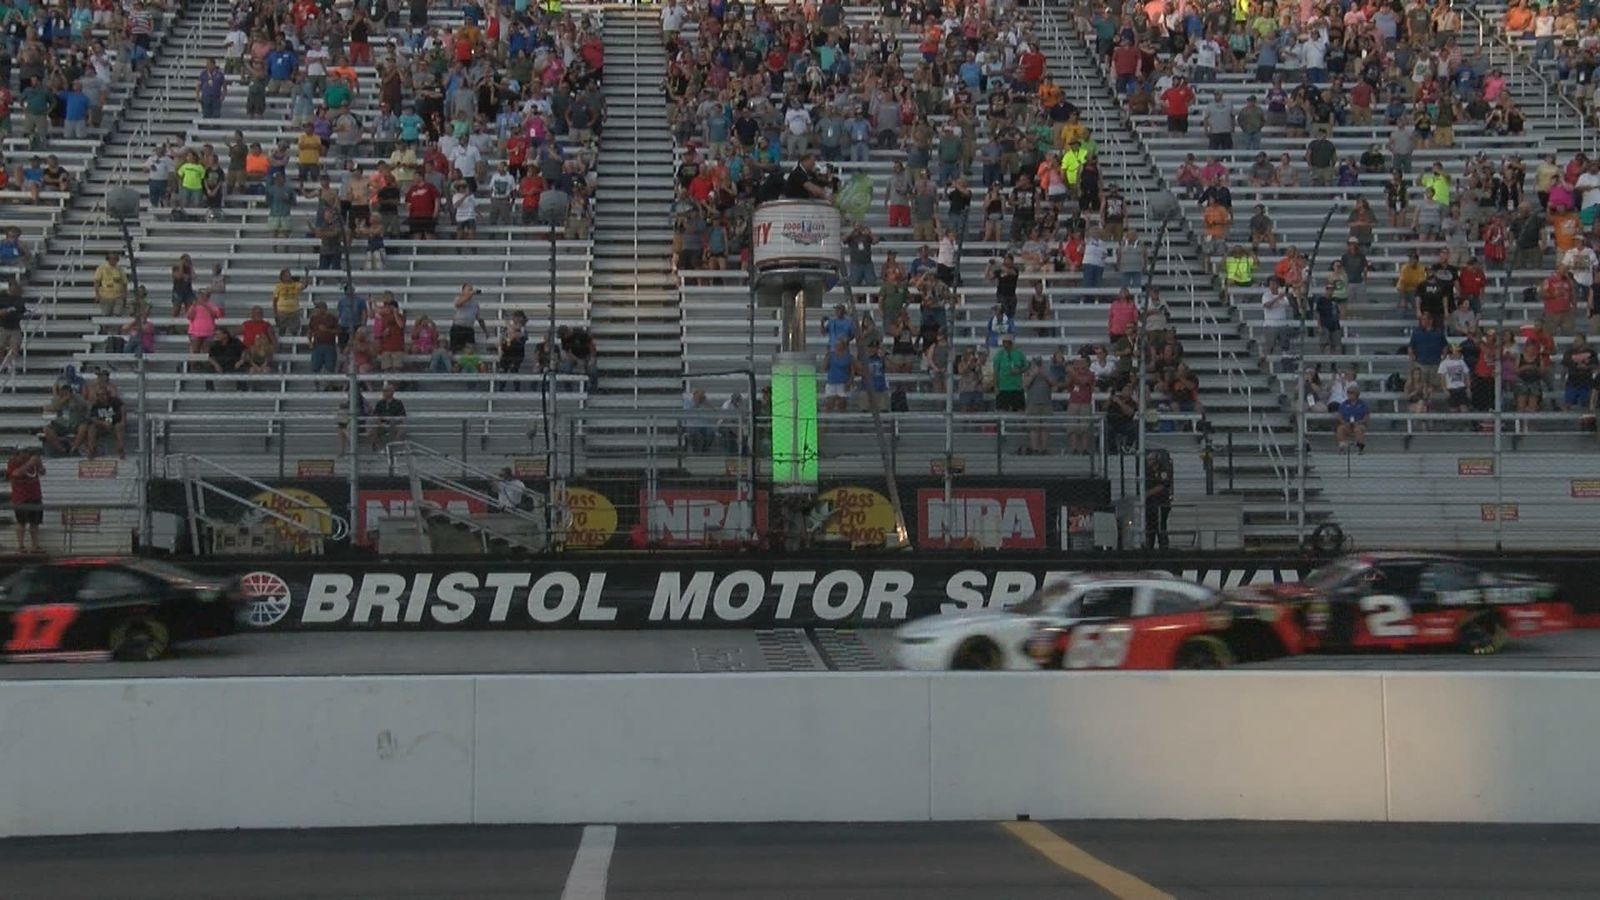 #2 Tyler Reddick is among those taking the green flag for the Food City 300. (WCYB Photo)